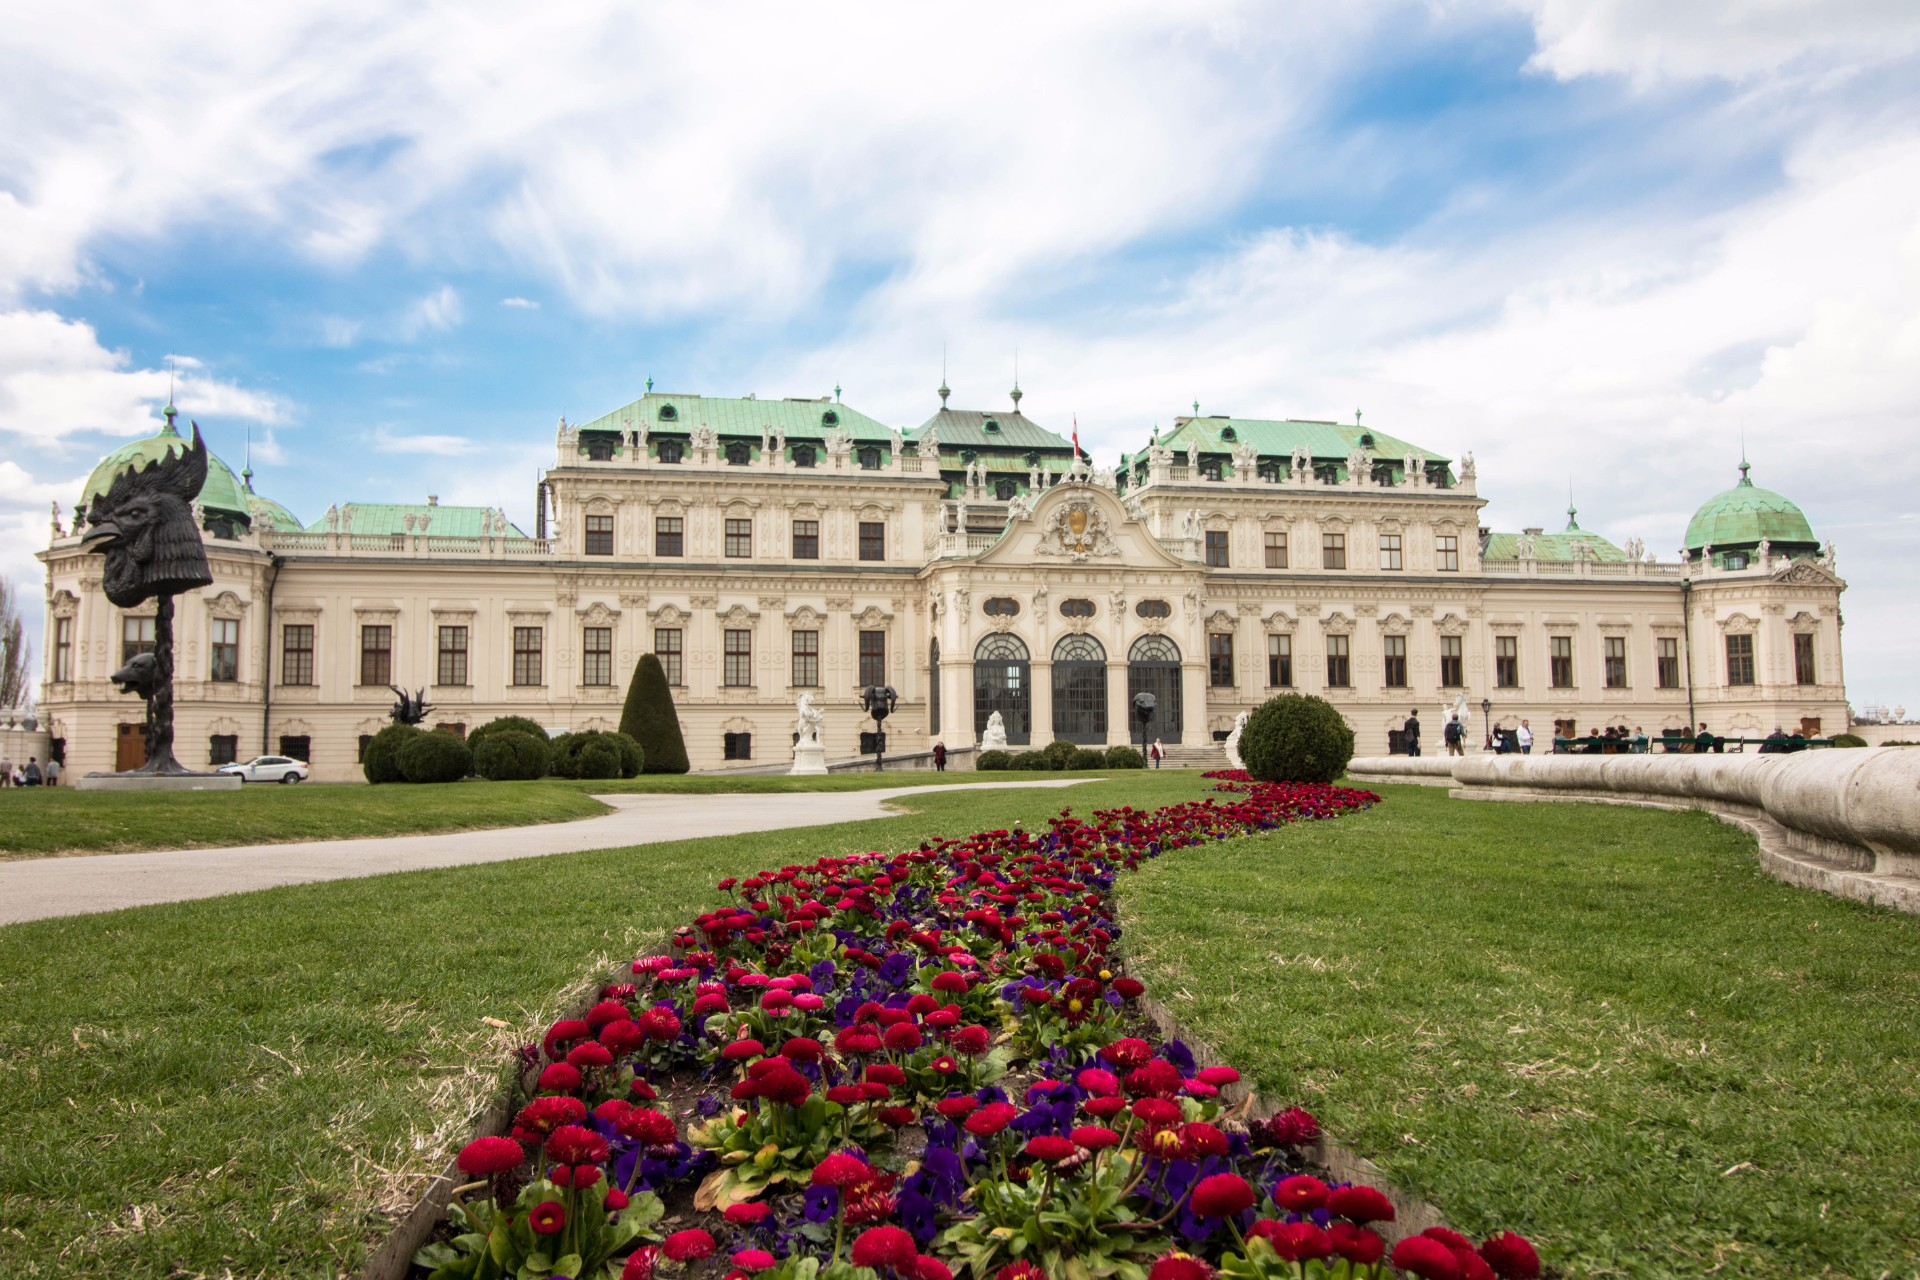 Belvedere Museum. Historical European museum and grand palace with a turquoise roof with beautiful red flower gardens and trees in front. 9 Amazing Places to Visit in Vienna, Austria. What to do in Vienna. Things to do in Vienna. Vienna sightseeing. Vienna attractions. Vienna top attractions. Vienna travel blog. Vienna travel guide. What to see in Vienna. Things to see in Vienna. Vienna tourism. Vienna tourist attractions. Vienna points of interest. Visit Vienna. Schönbrunn Palace. Schonburnn Palace. St. Stephen's Cathedral. Hundertwasser Village. Votive Church. Belvedere Museum. Prater Park. Museumsquartier. Hofburg Palace. Stadt Park. Click through to read more...